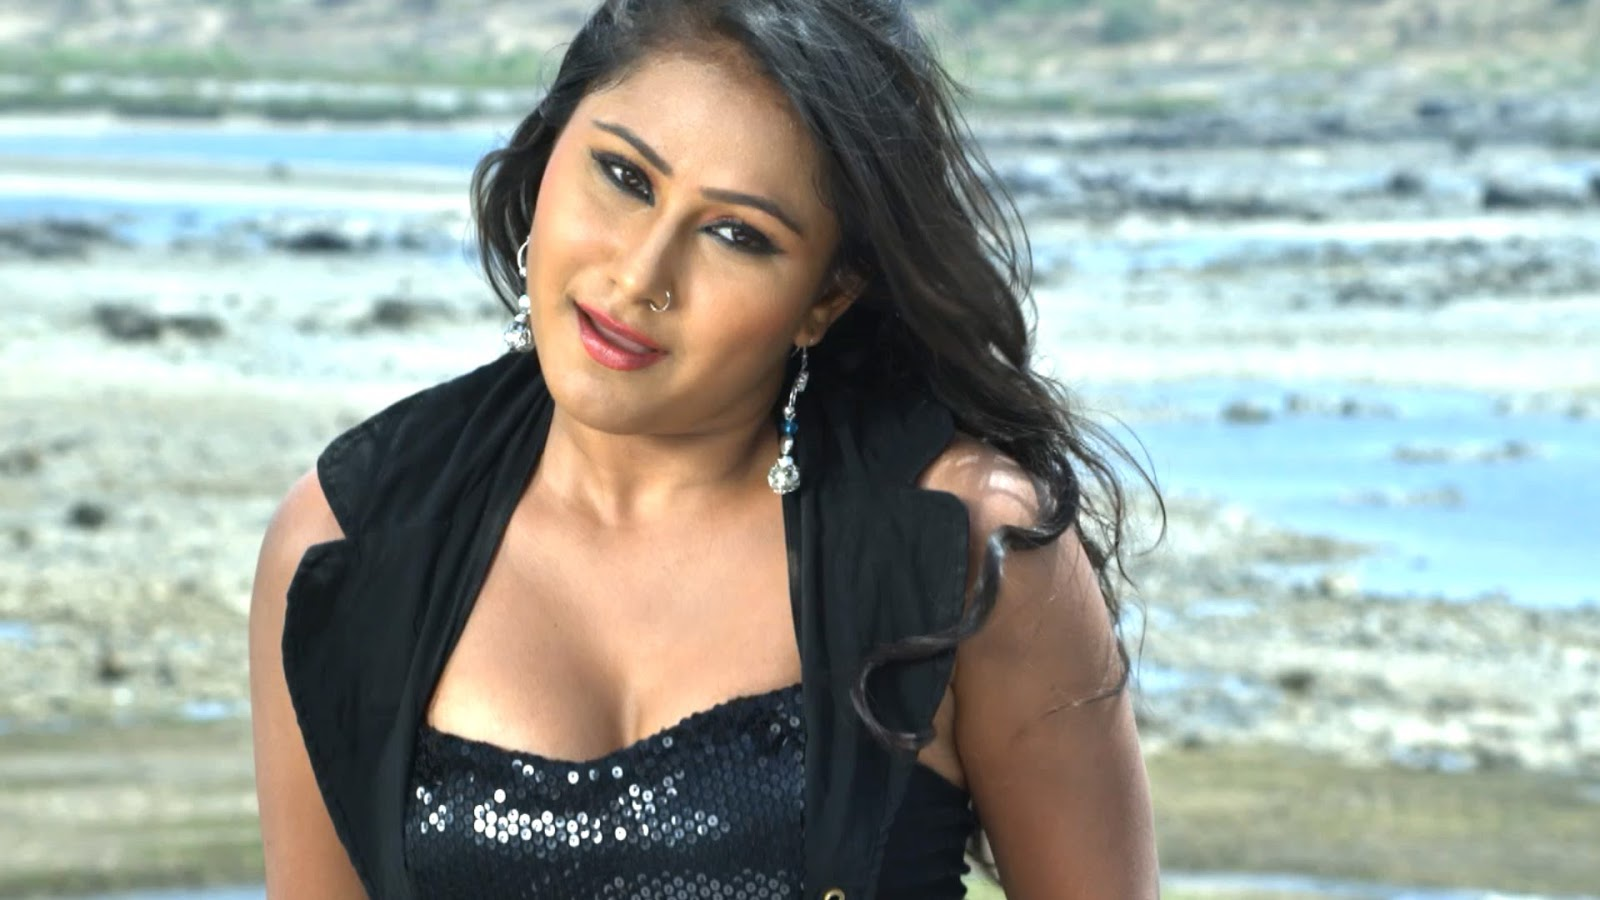 Rani Chatterjee, Priyanka Pandit 2016 Bhojpuri upcoming Hero Uhe Je Heroine Leke Jaye wiki, Shooting, release date, HD Poster, Hot pics, Latest news info